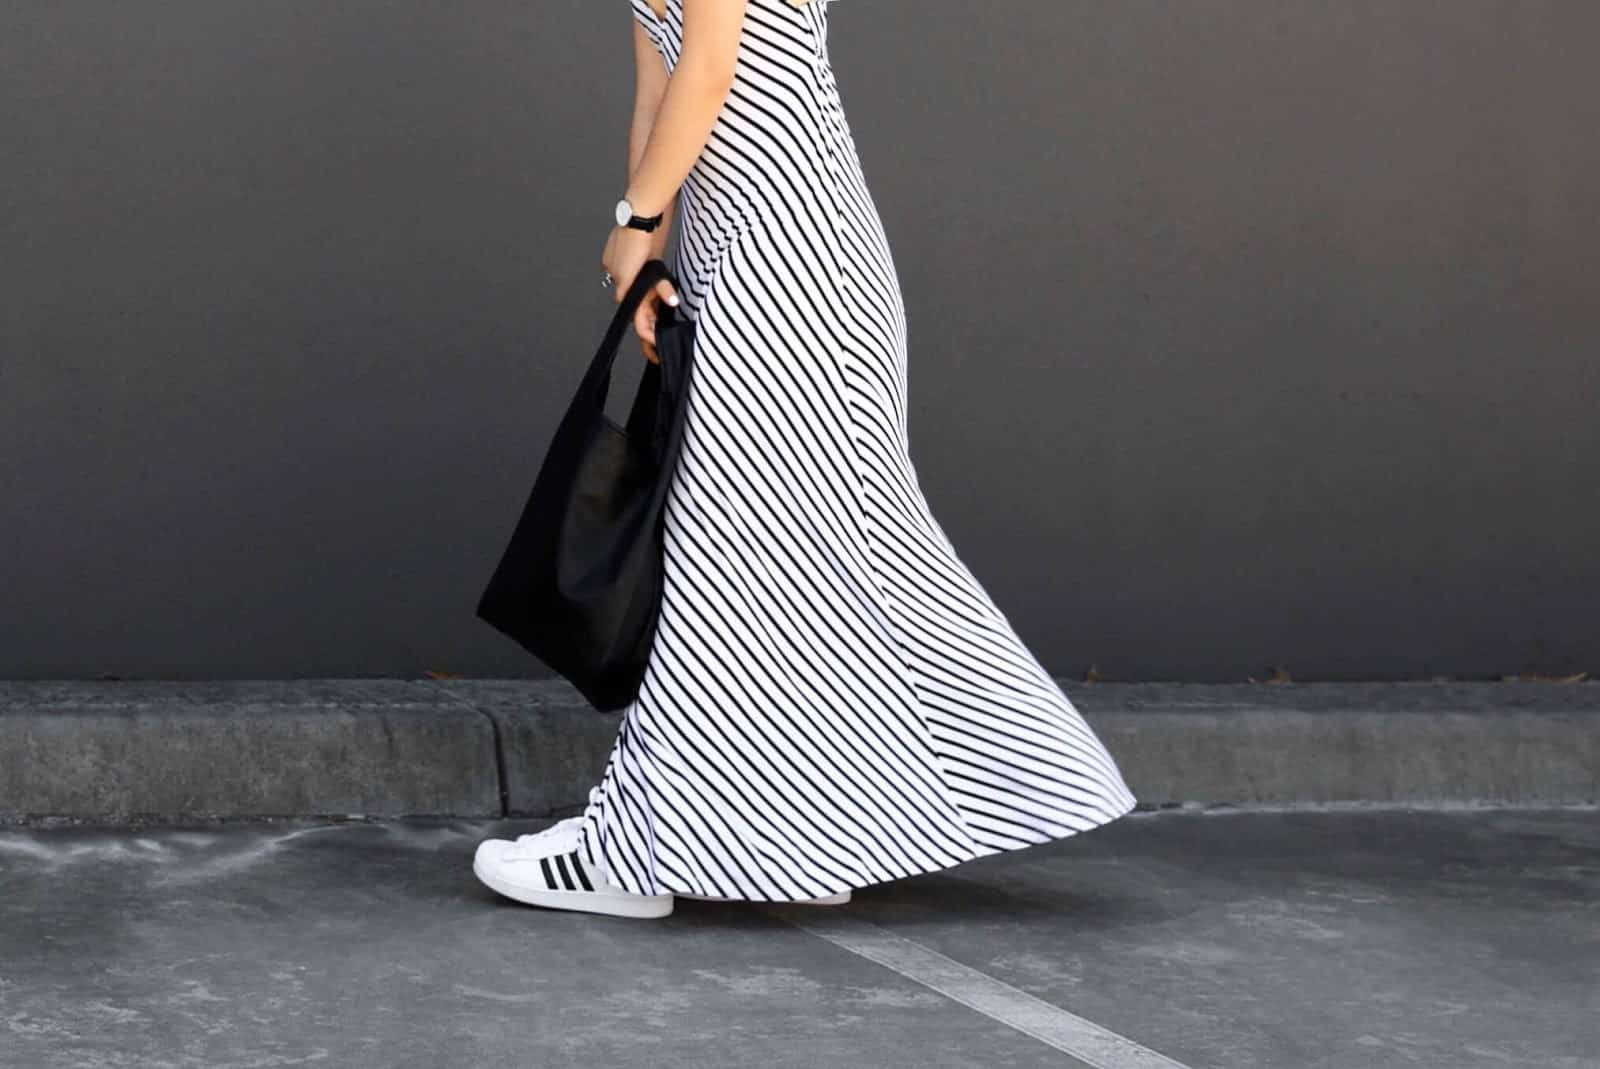 Adidas_superstars_striped_dress_streetstyle